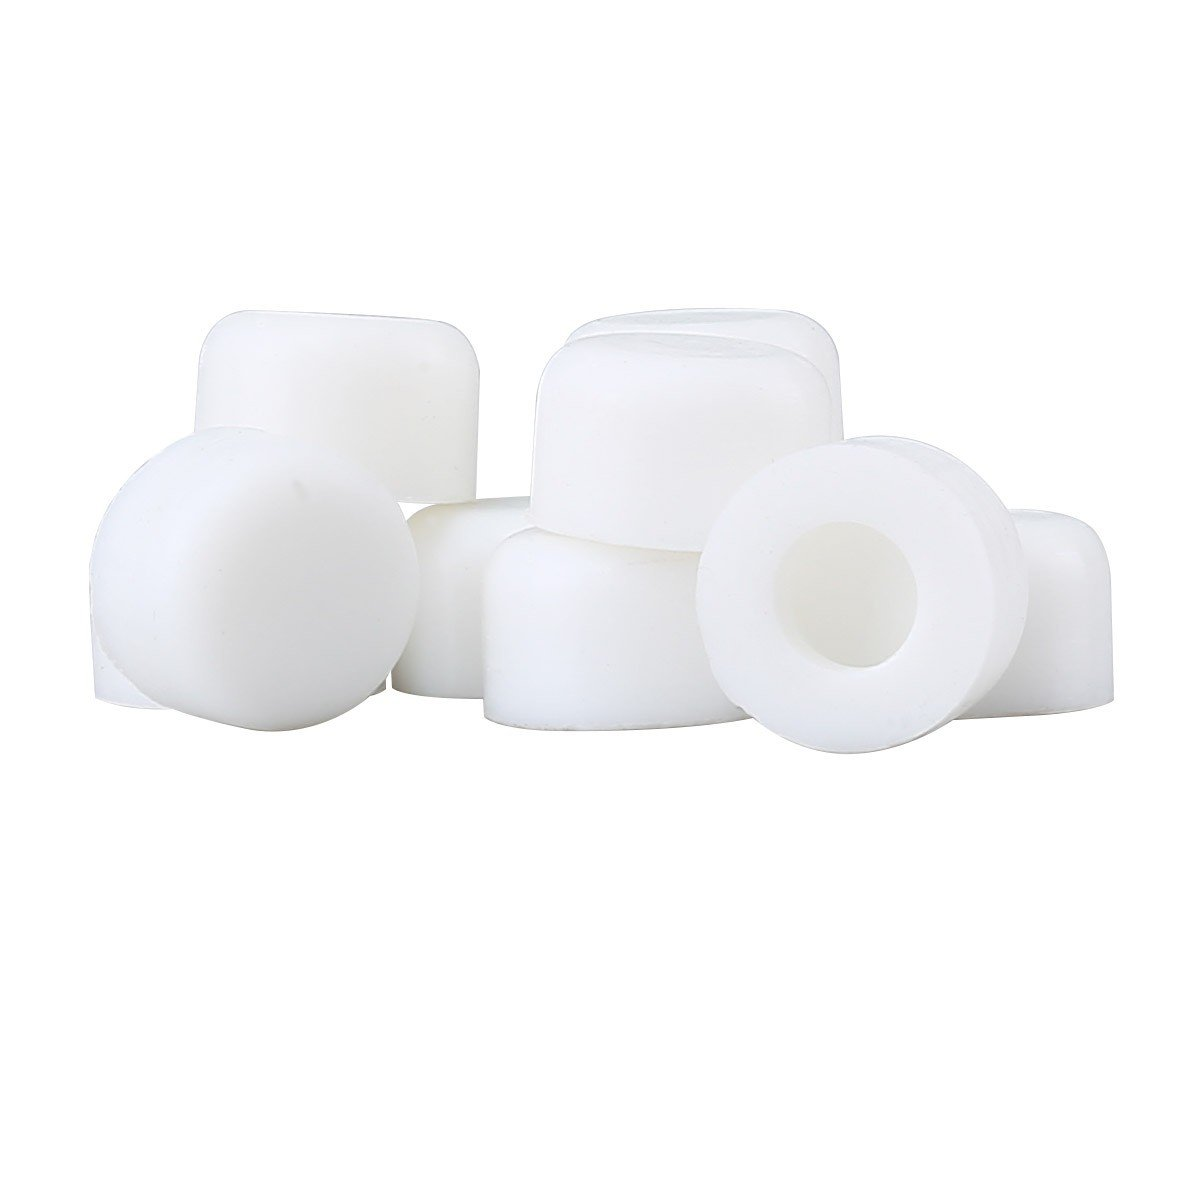 "2 - 10PK Premium Silicone White Door Stopper Tips 1/4"" ID 